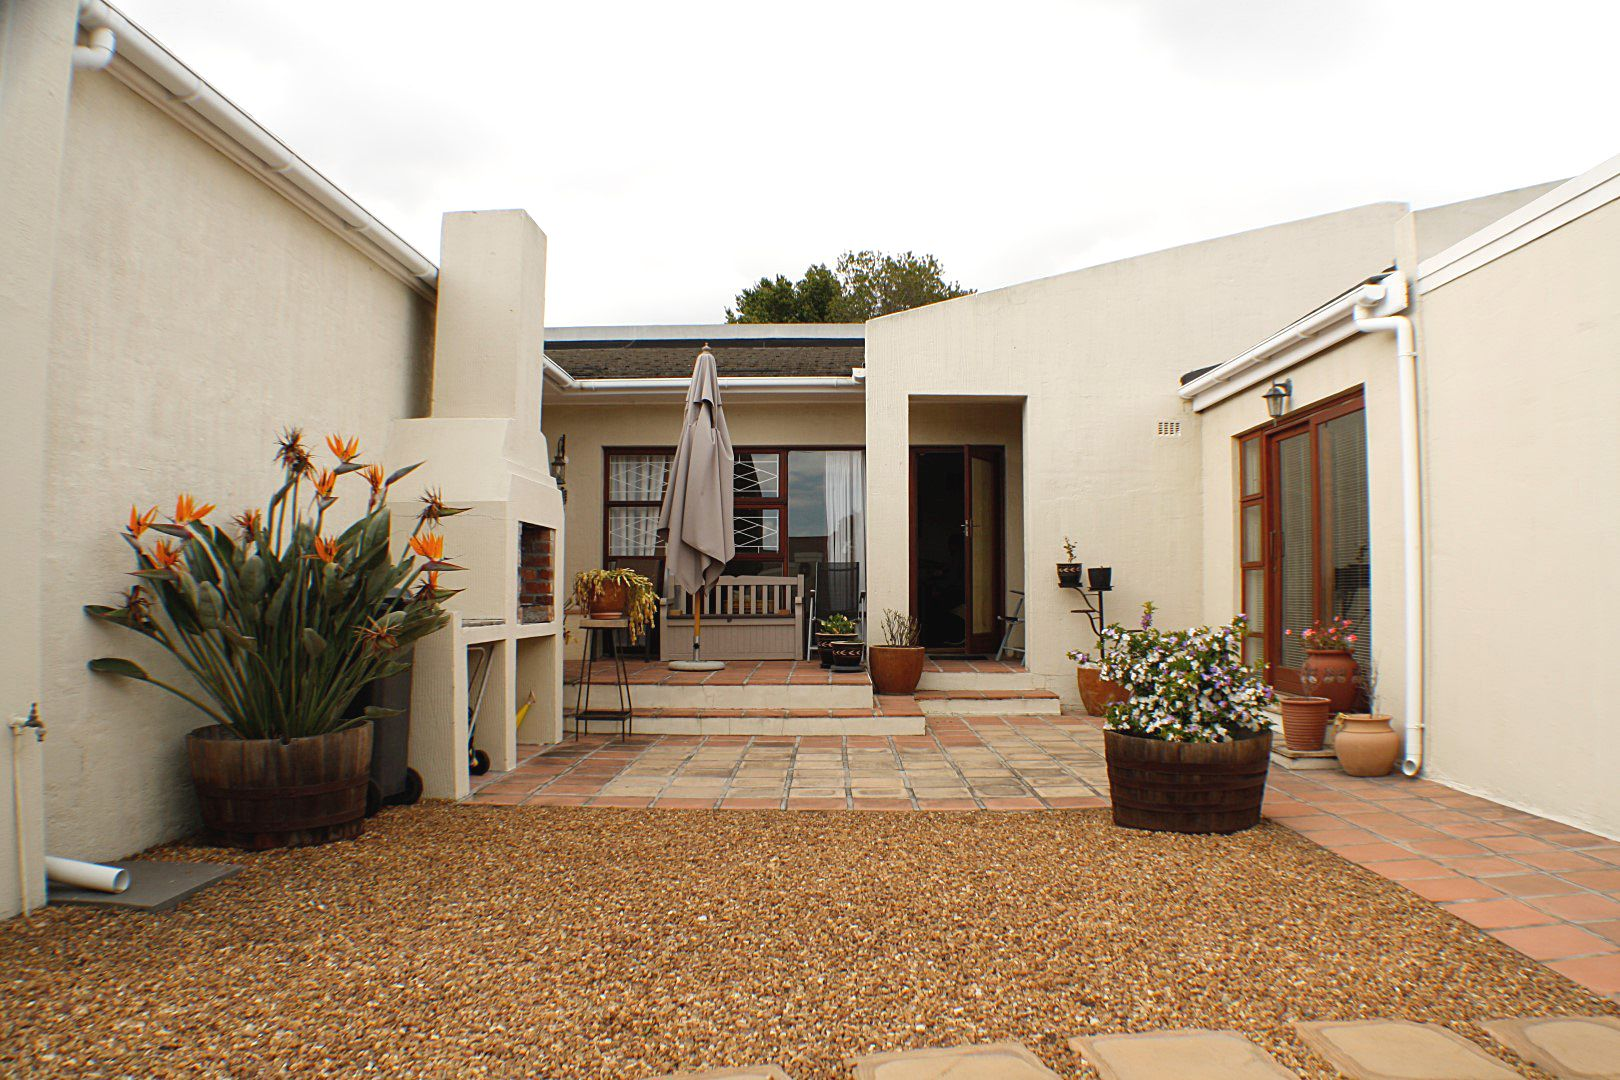 4 Bedroom House for sale in Edgemead ENT0067558 : photo#13